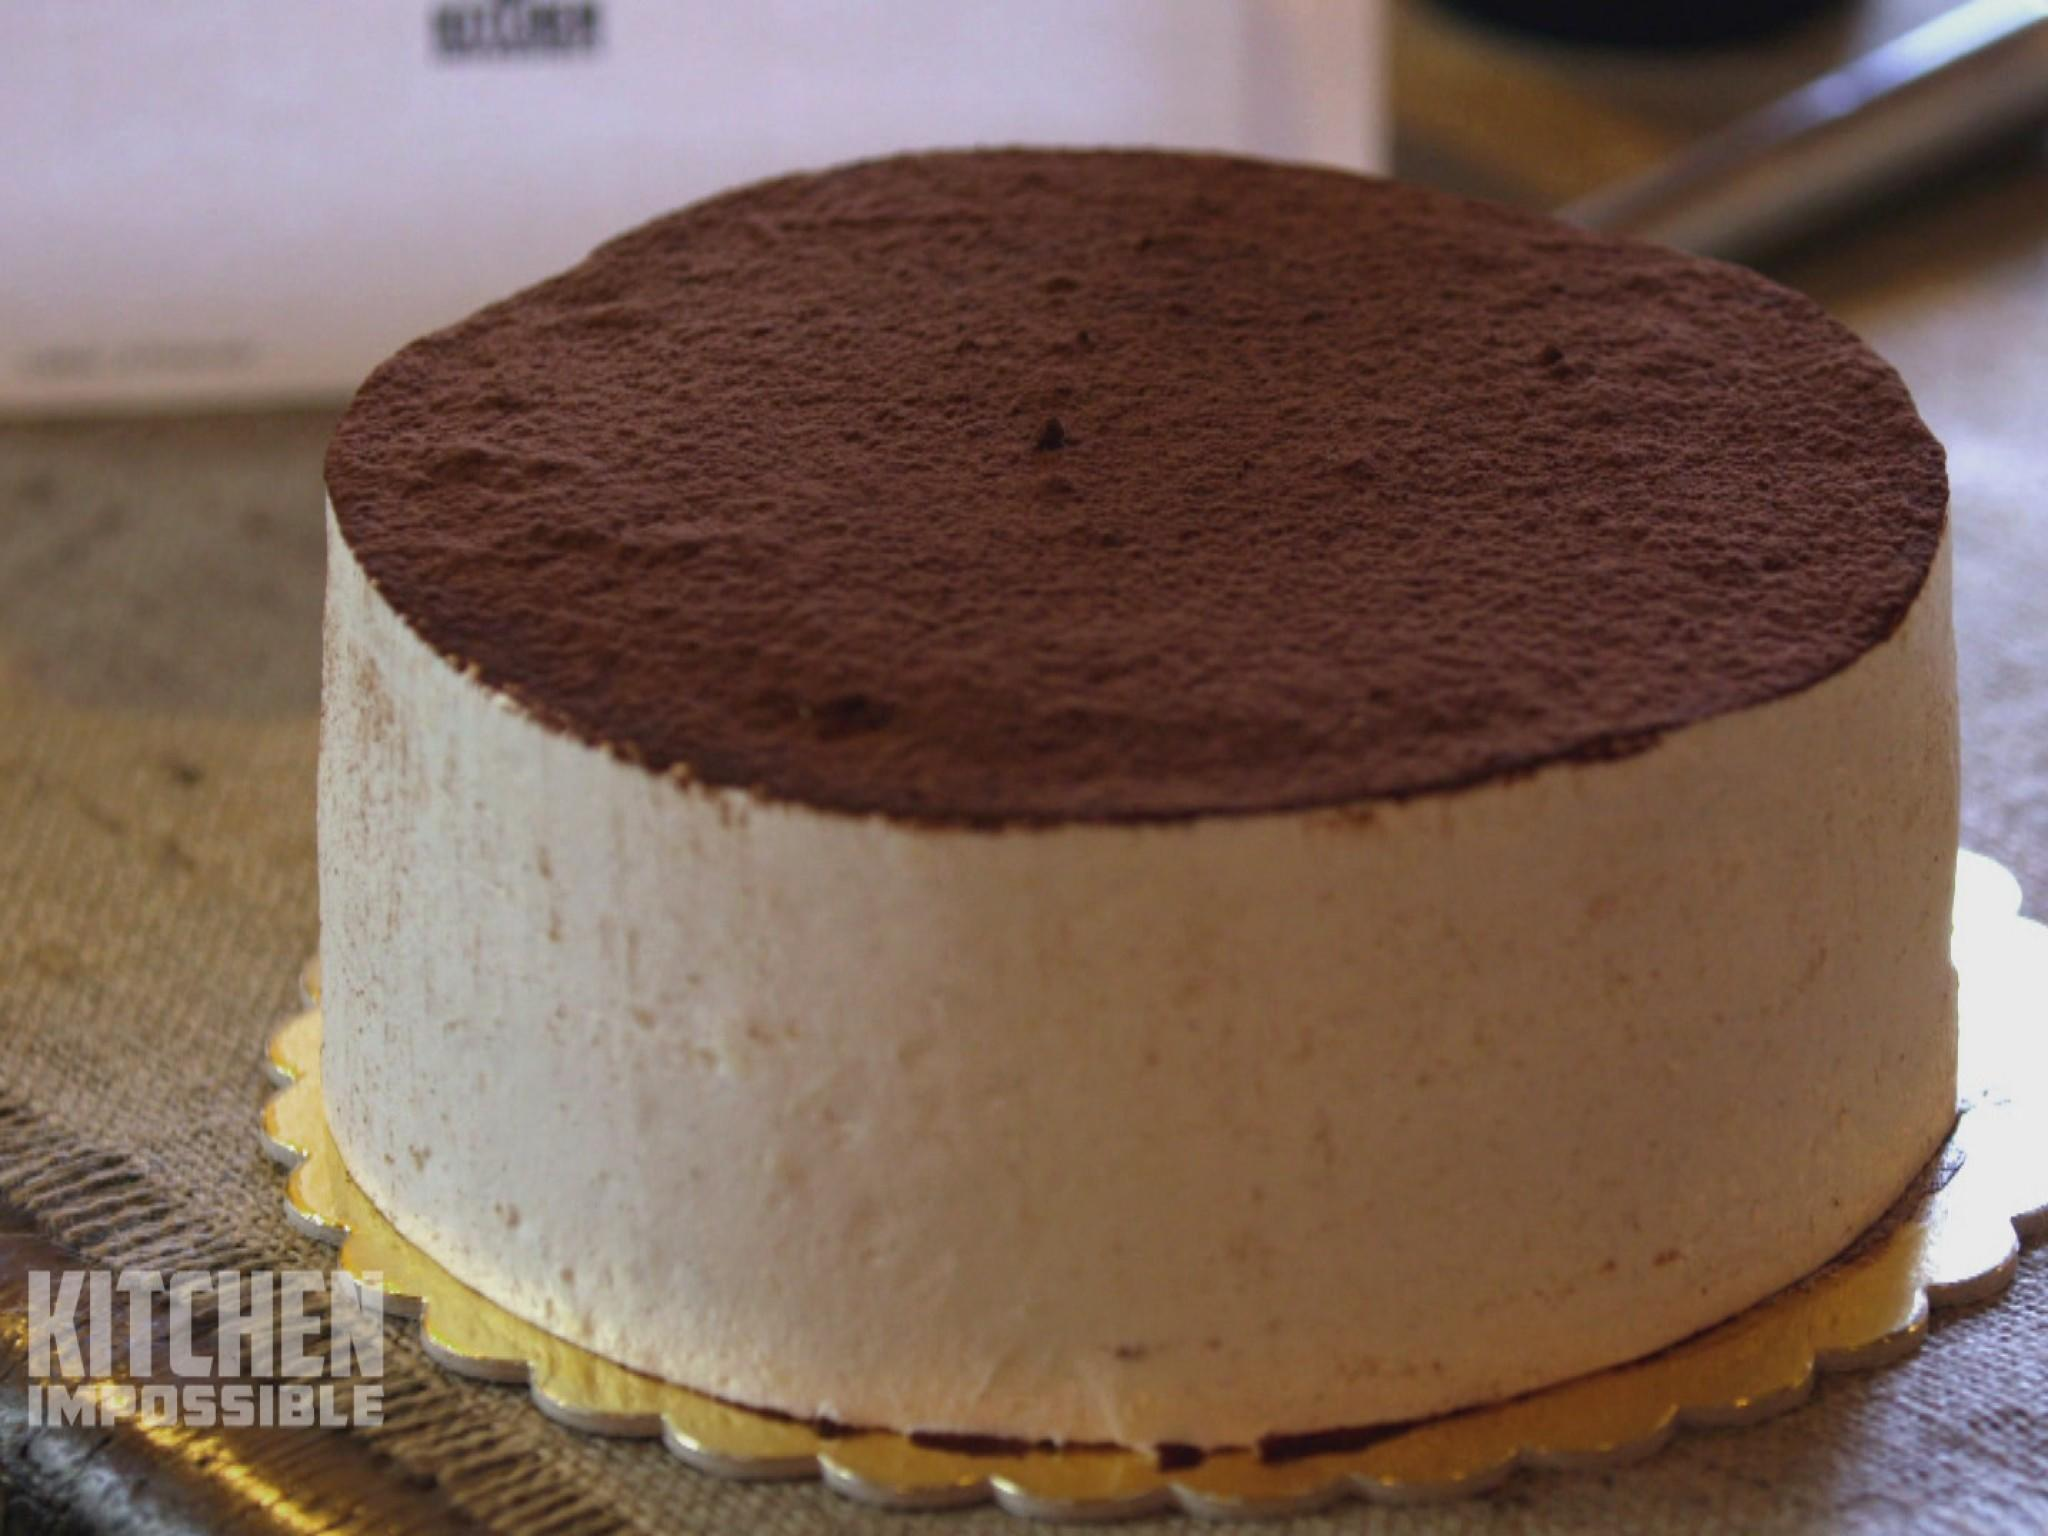 kitchen impossible tiramisu